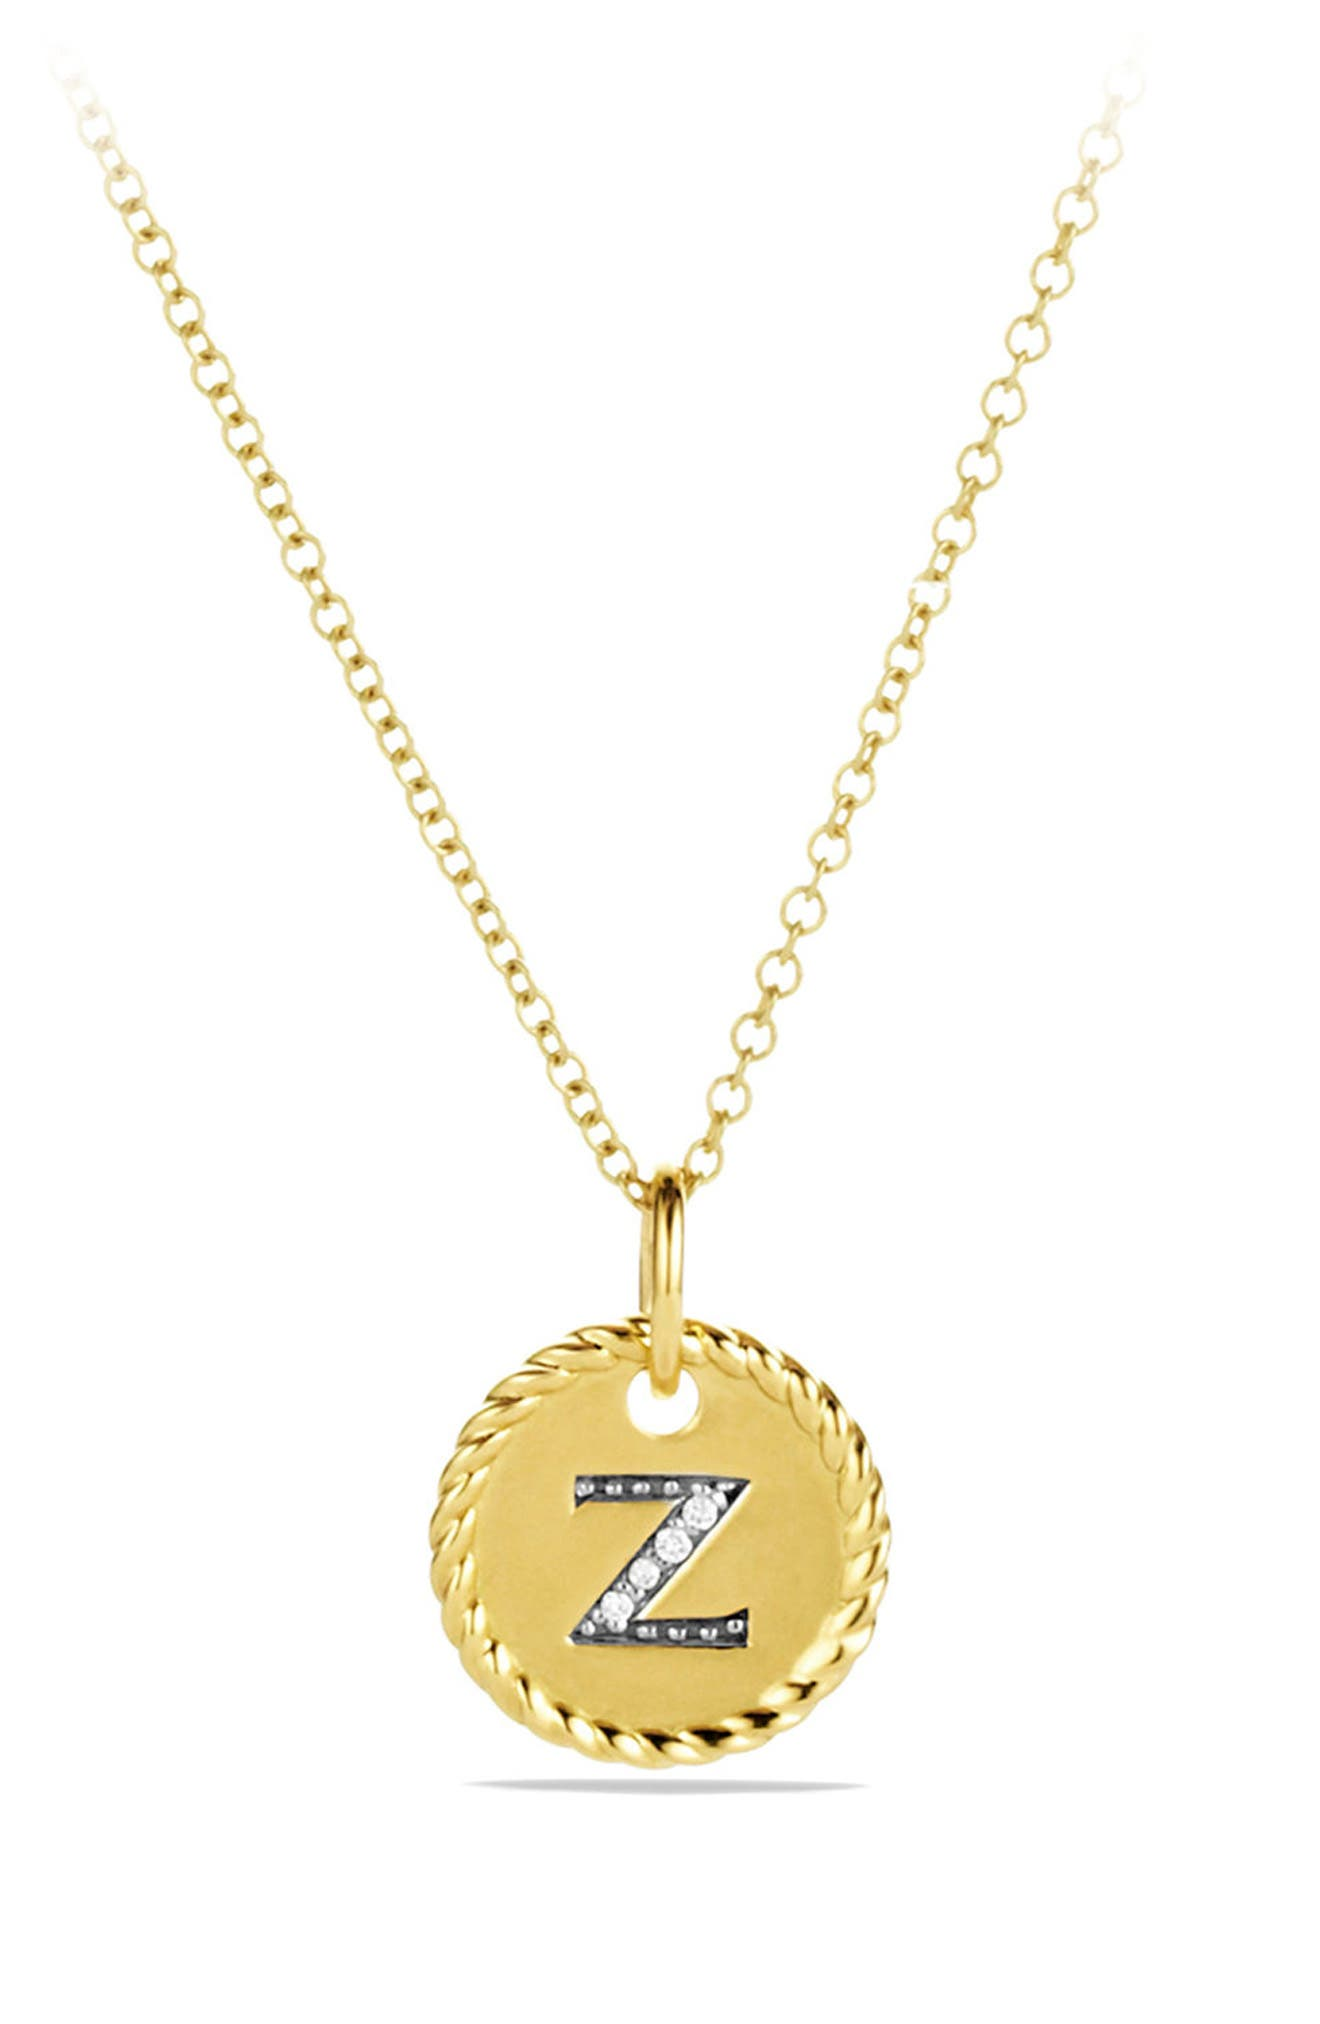 Initial Charm Necklace with Diamonds in 18K Gold,                             Main thumbnail 1, color,                             Z